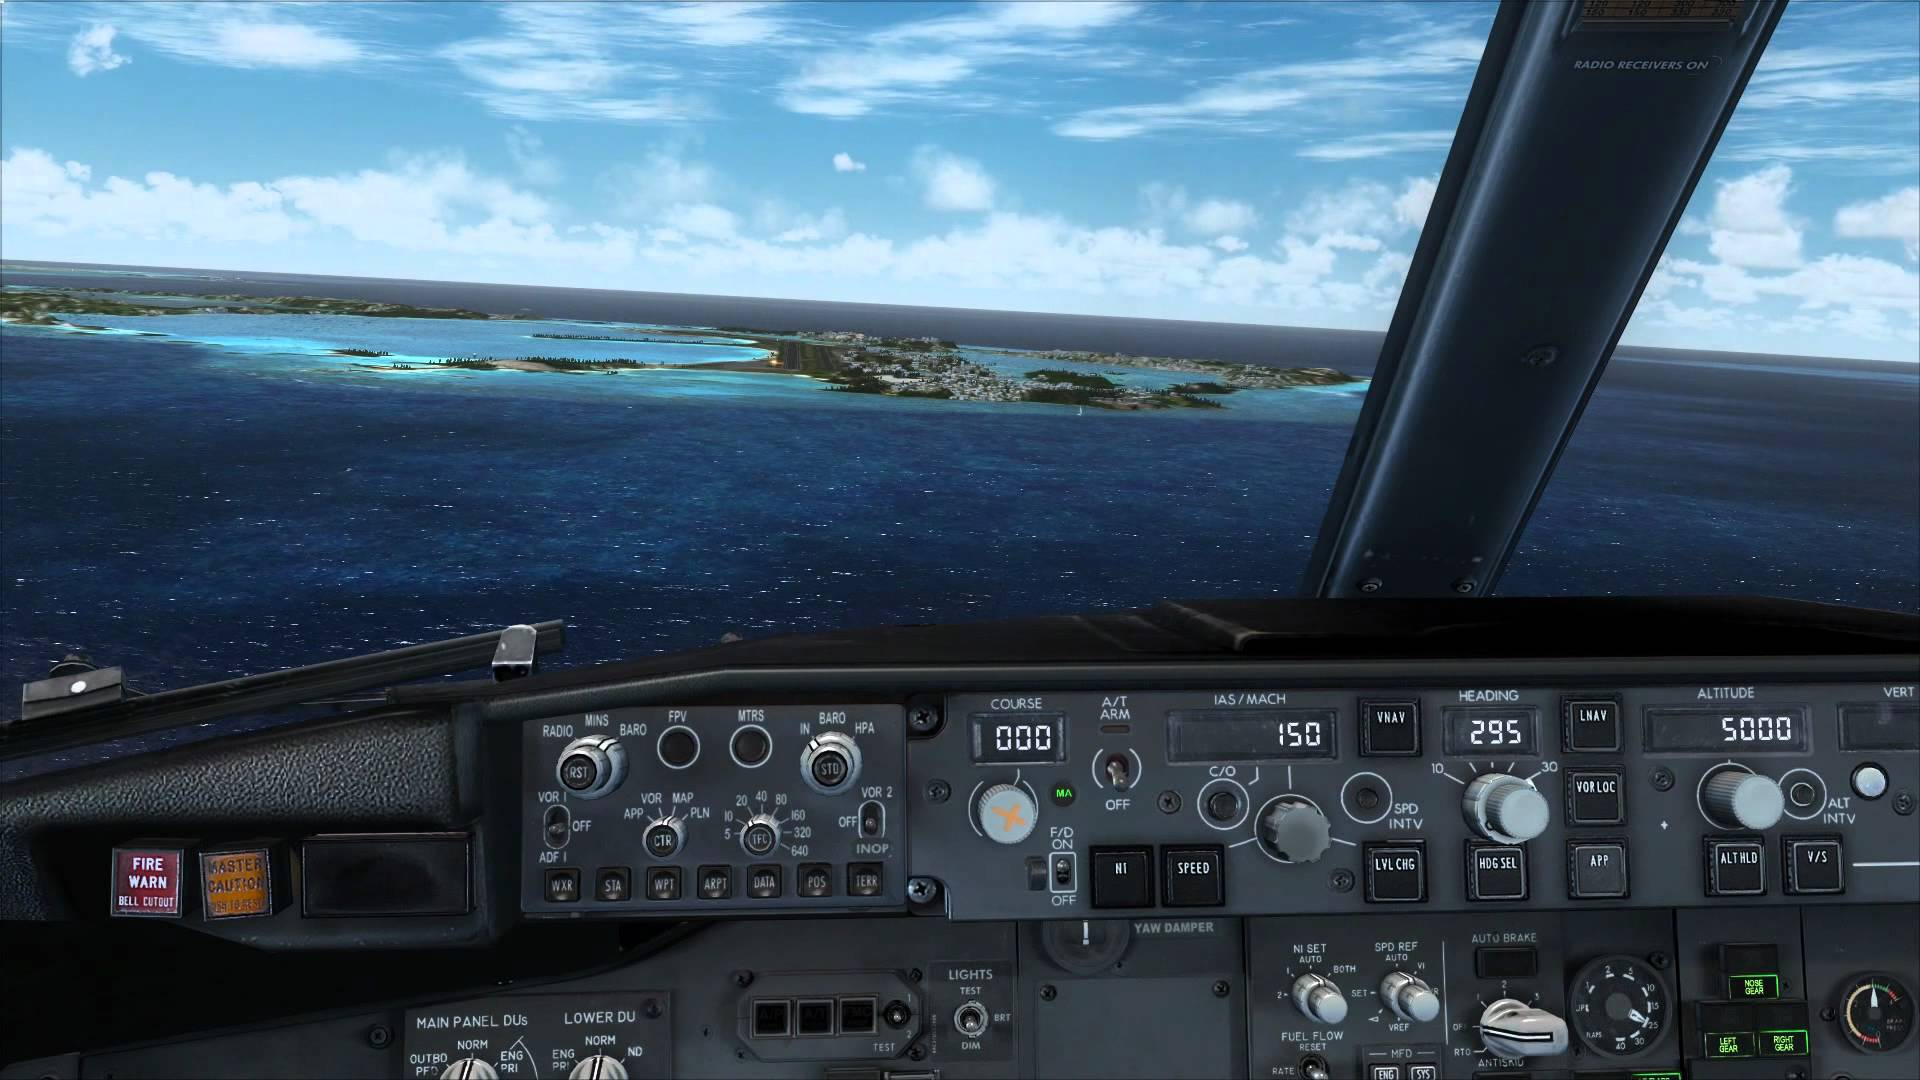 Flight Simulator X Wallpaper: Bermuda Triangle Wallpapers